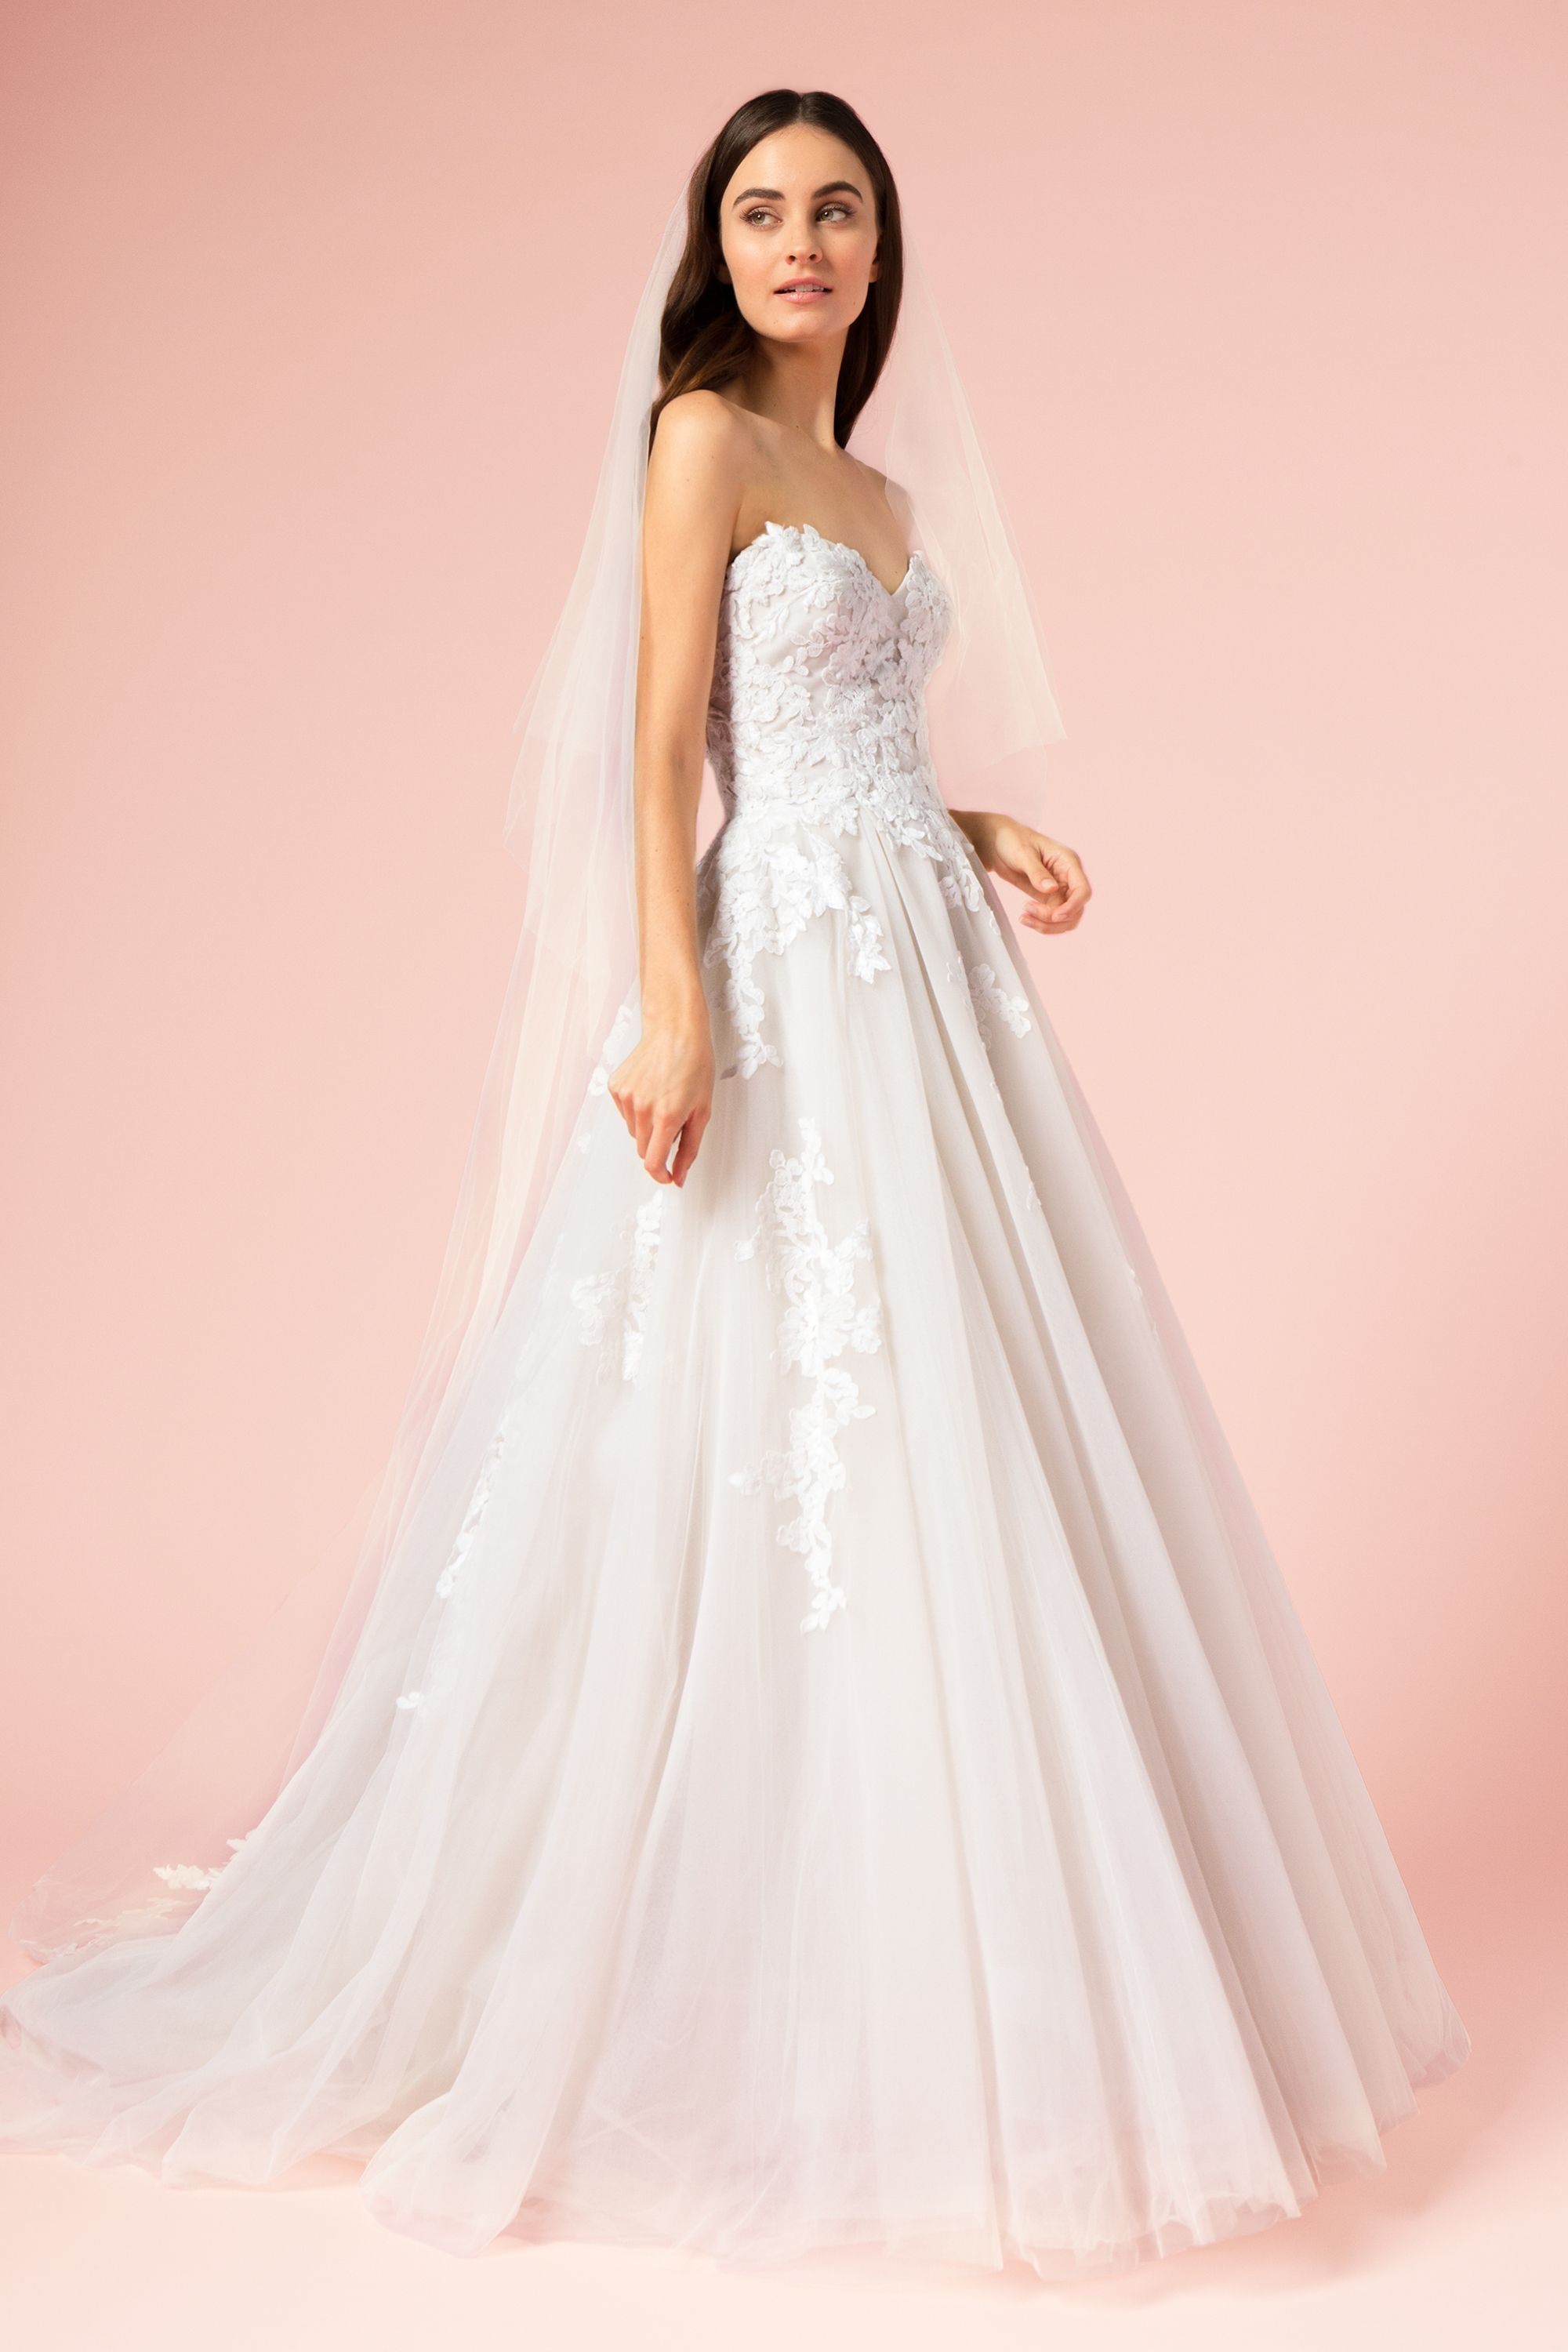 Style #17106 from the BLISS collection by Monique Lhuillier ...